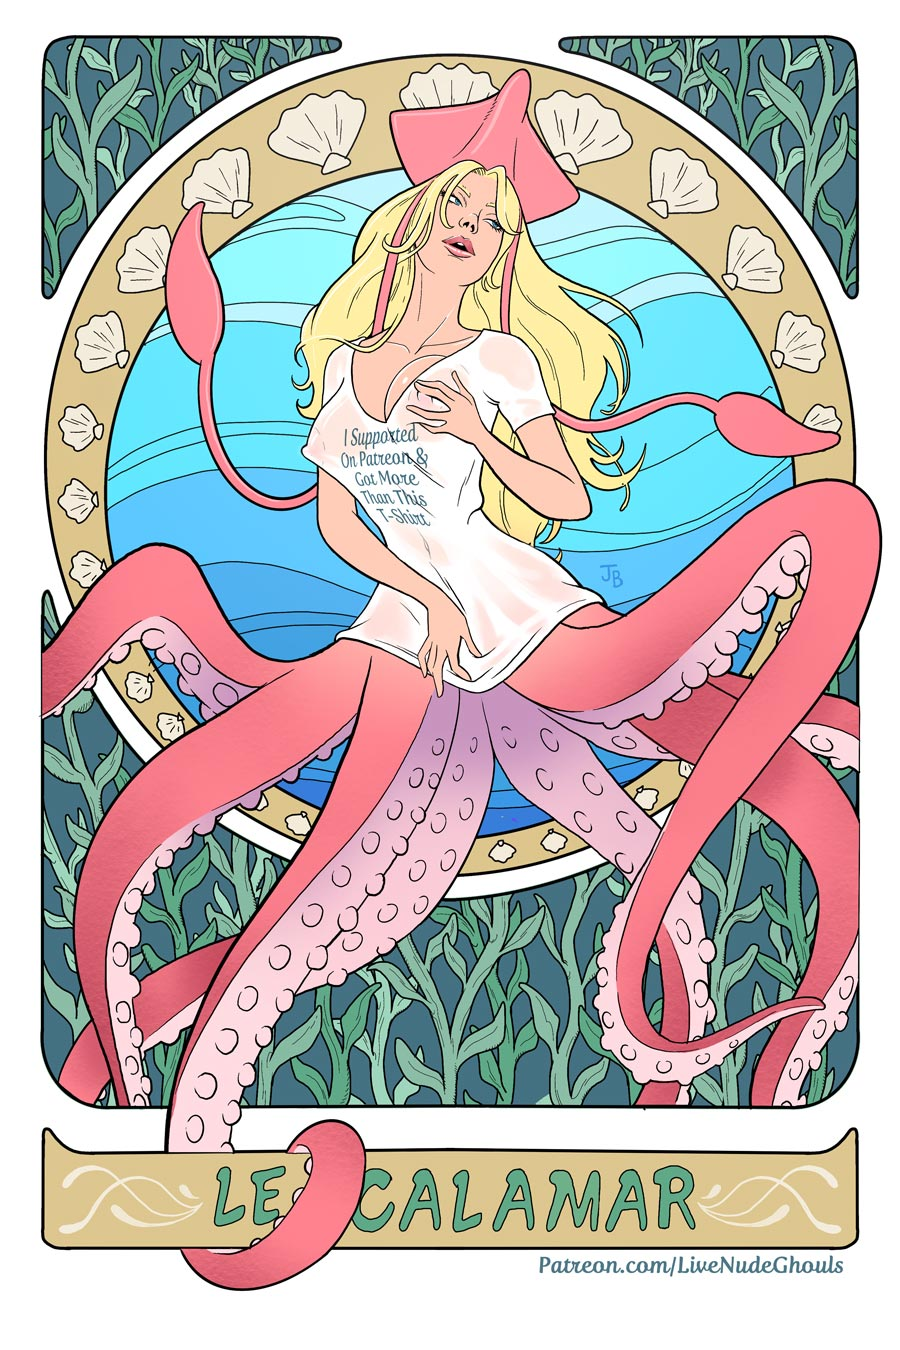 Sexy Squid Woman drawn in a Art Nouveau style - Clean Version